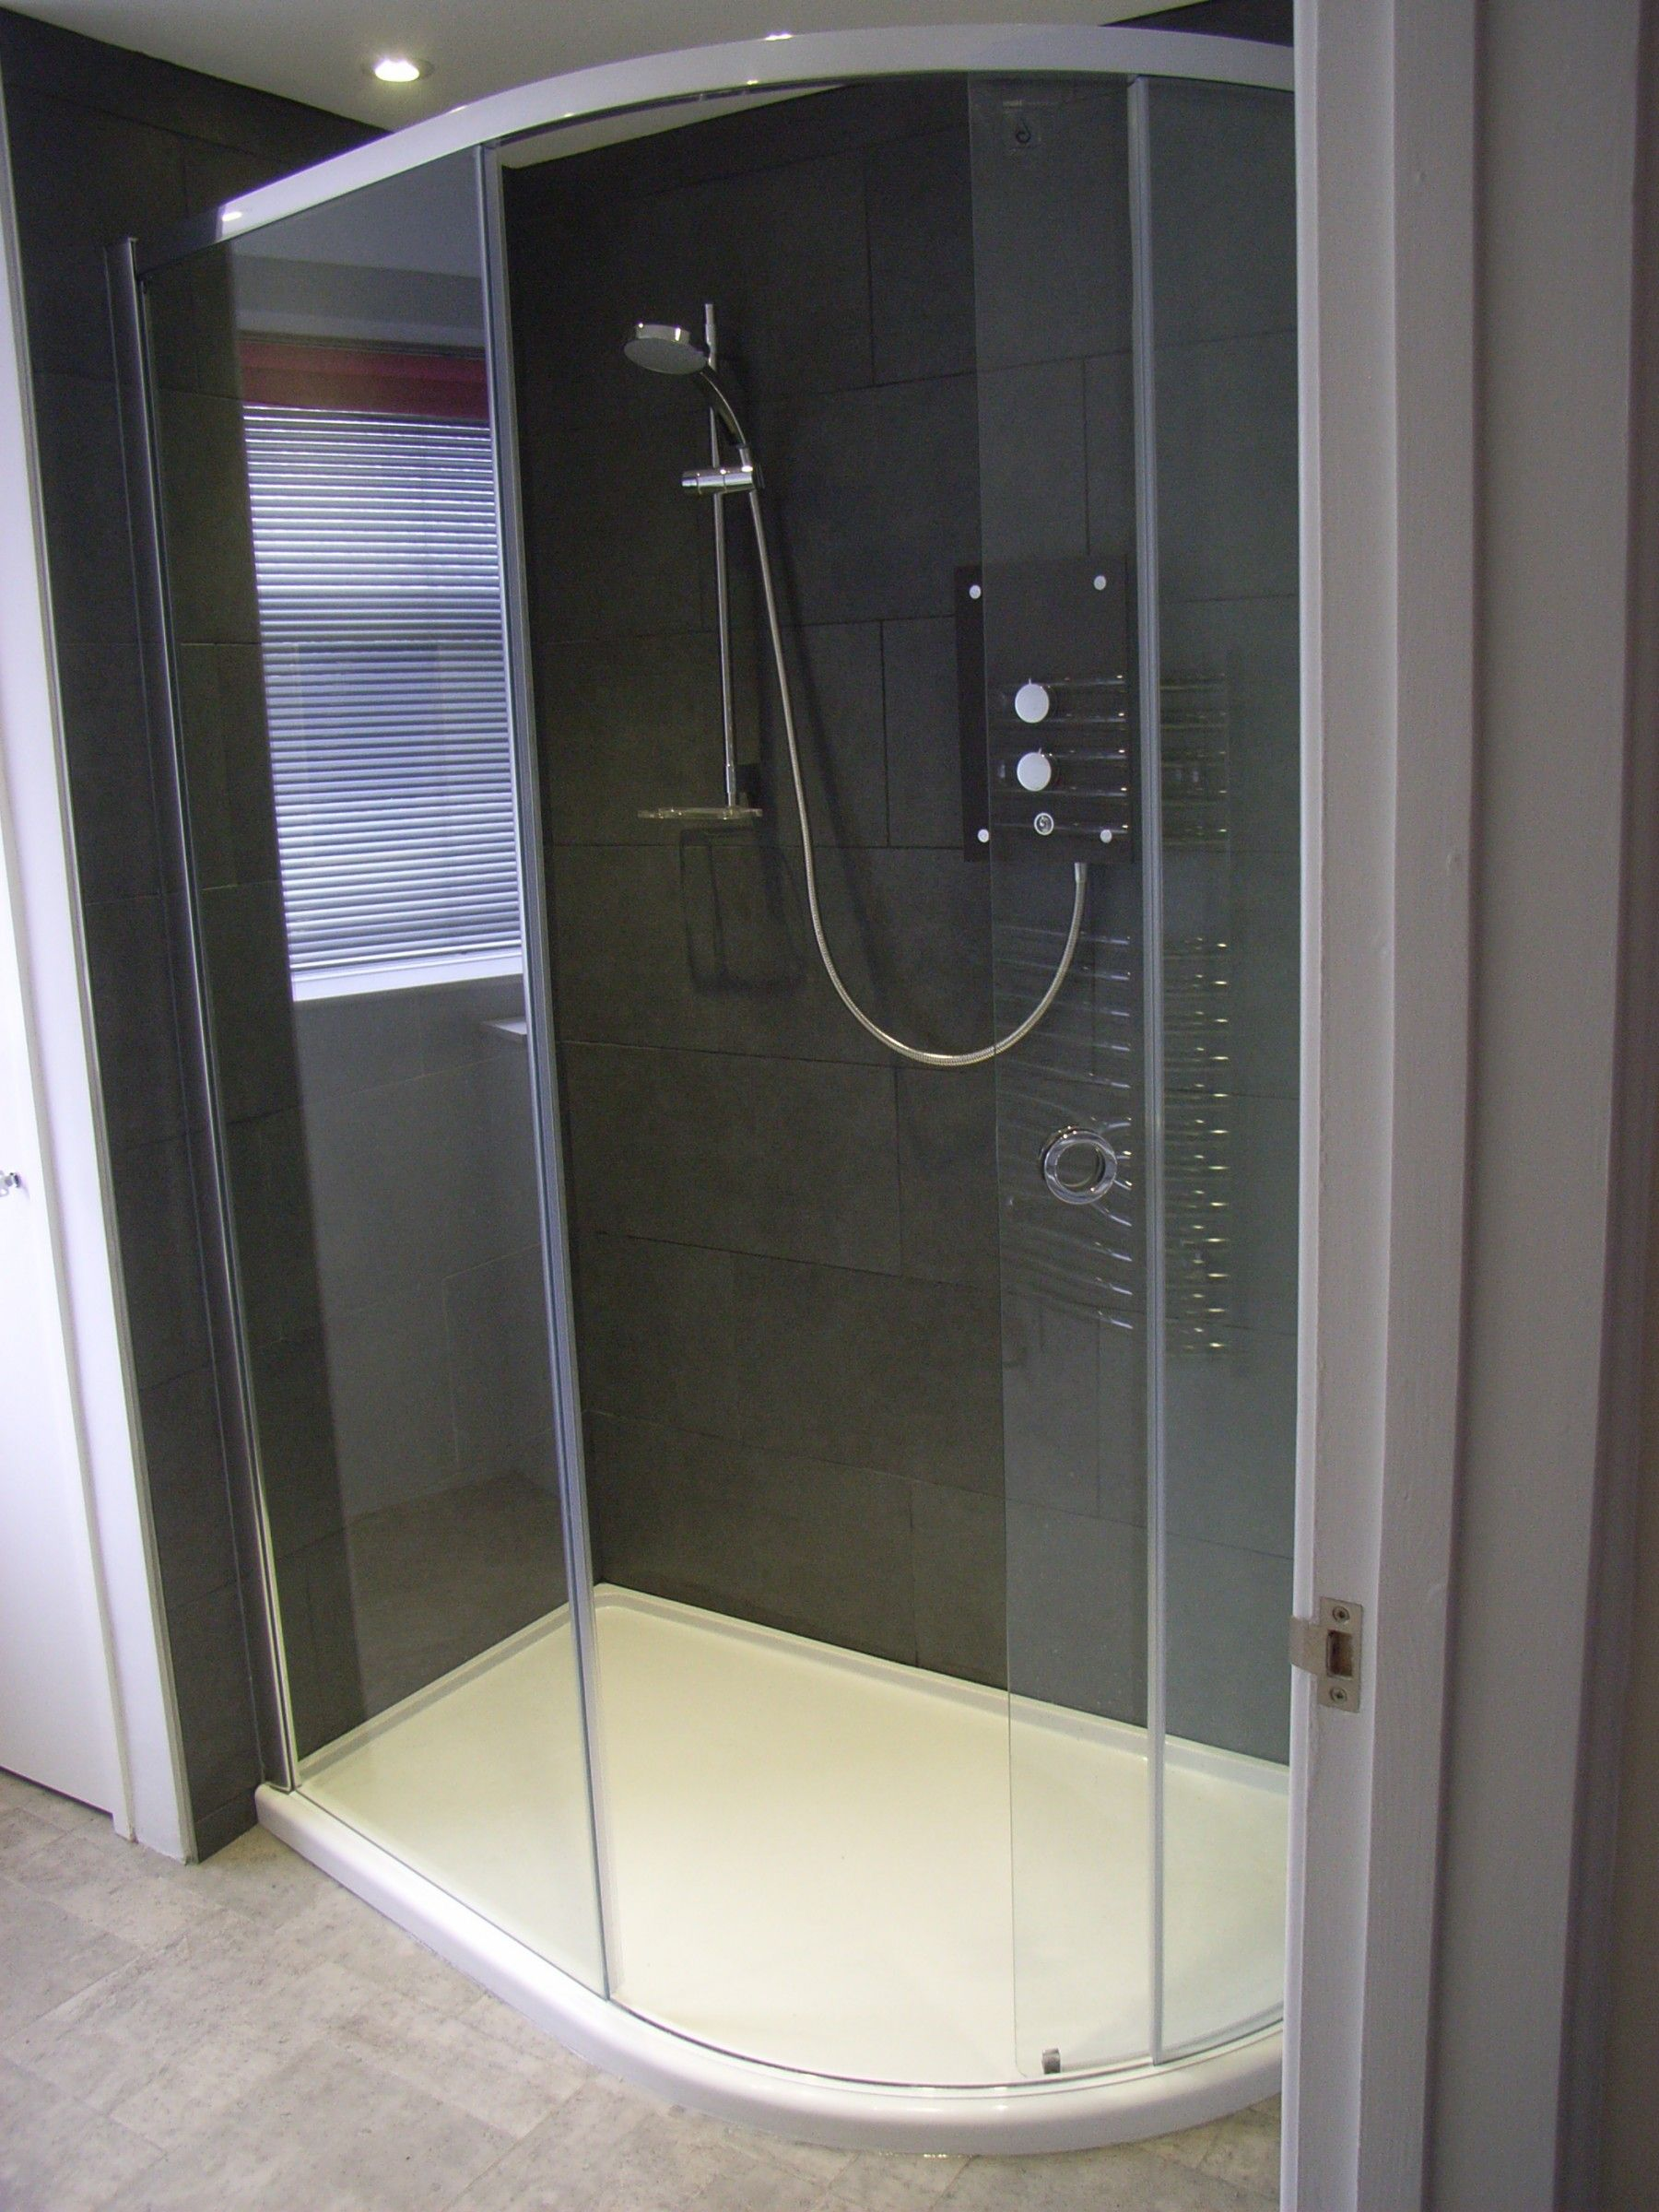 Large quadrant shower enclosure with electric shower in small ...